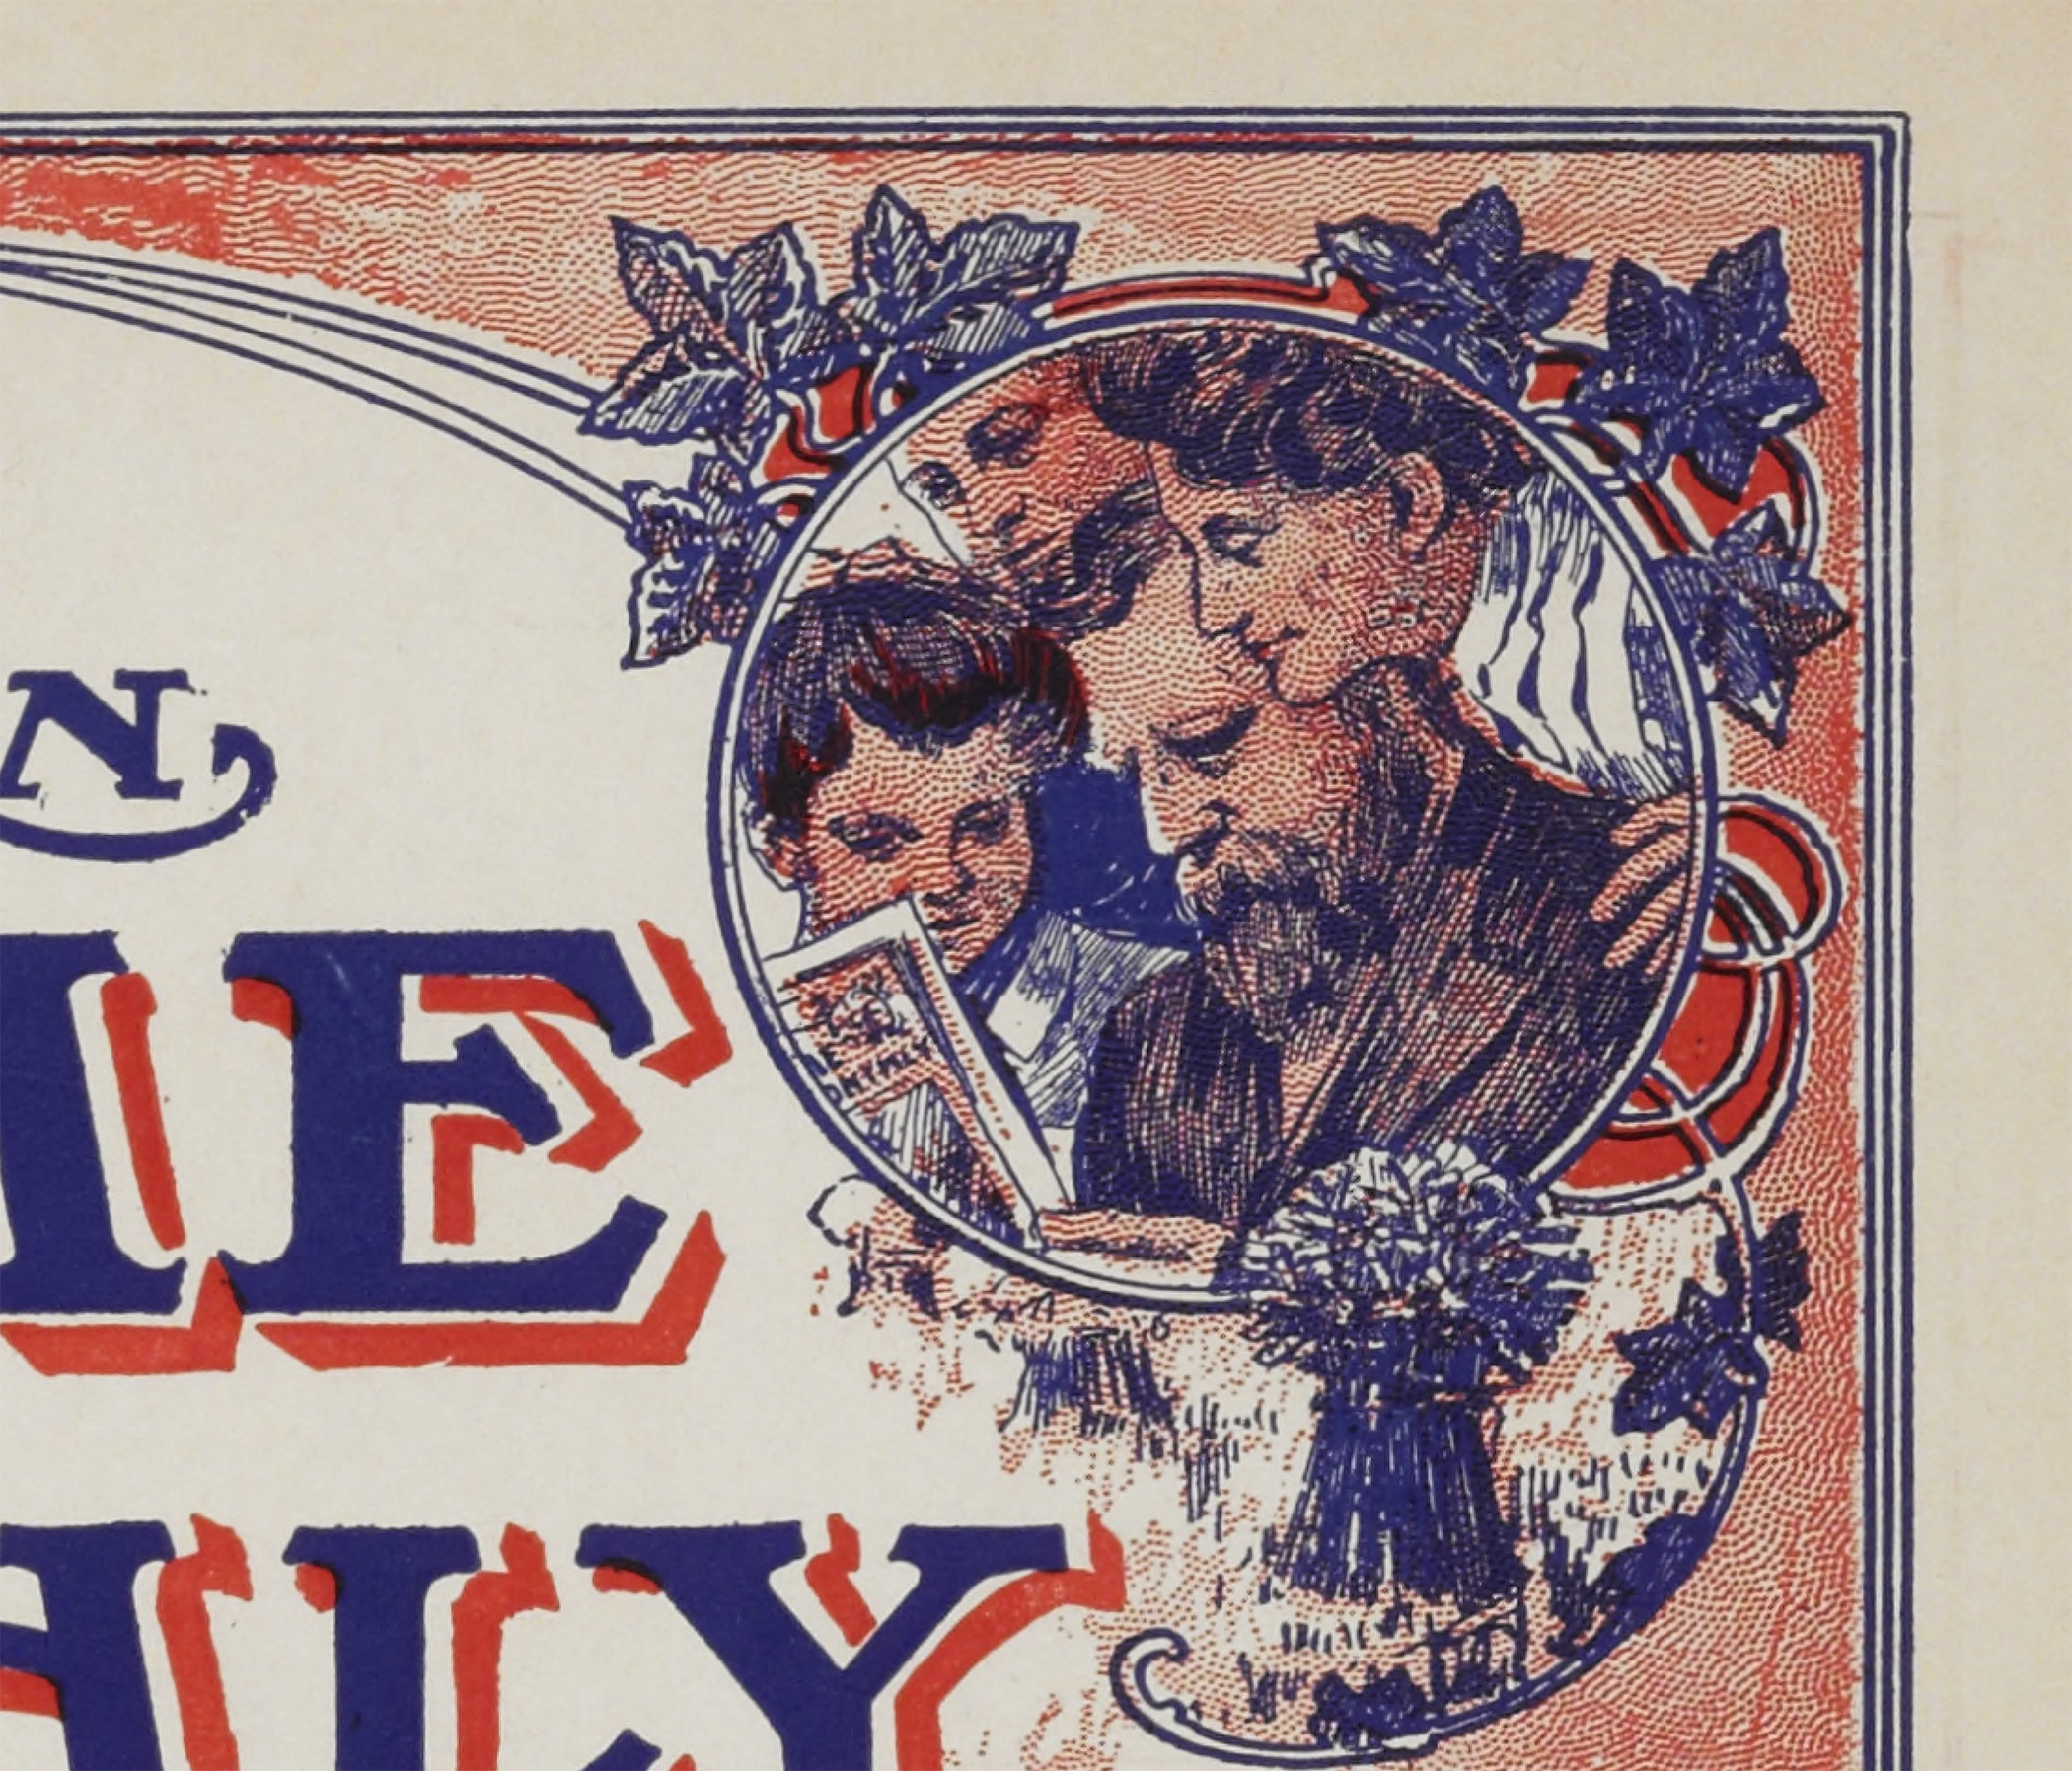 Cover detail, July 1908. On the cover, the magazine is still primarily men's privilege. Courtesy of Peel's Prairie Provinces (peel. library.ualberta.ca), a digital initiative of the University of Alberta Libraries.